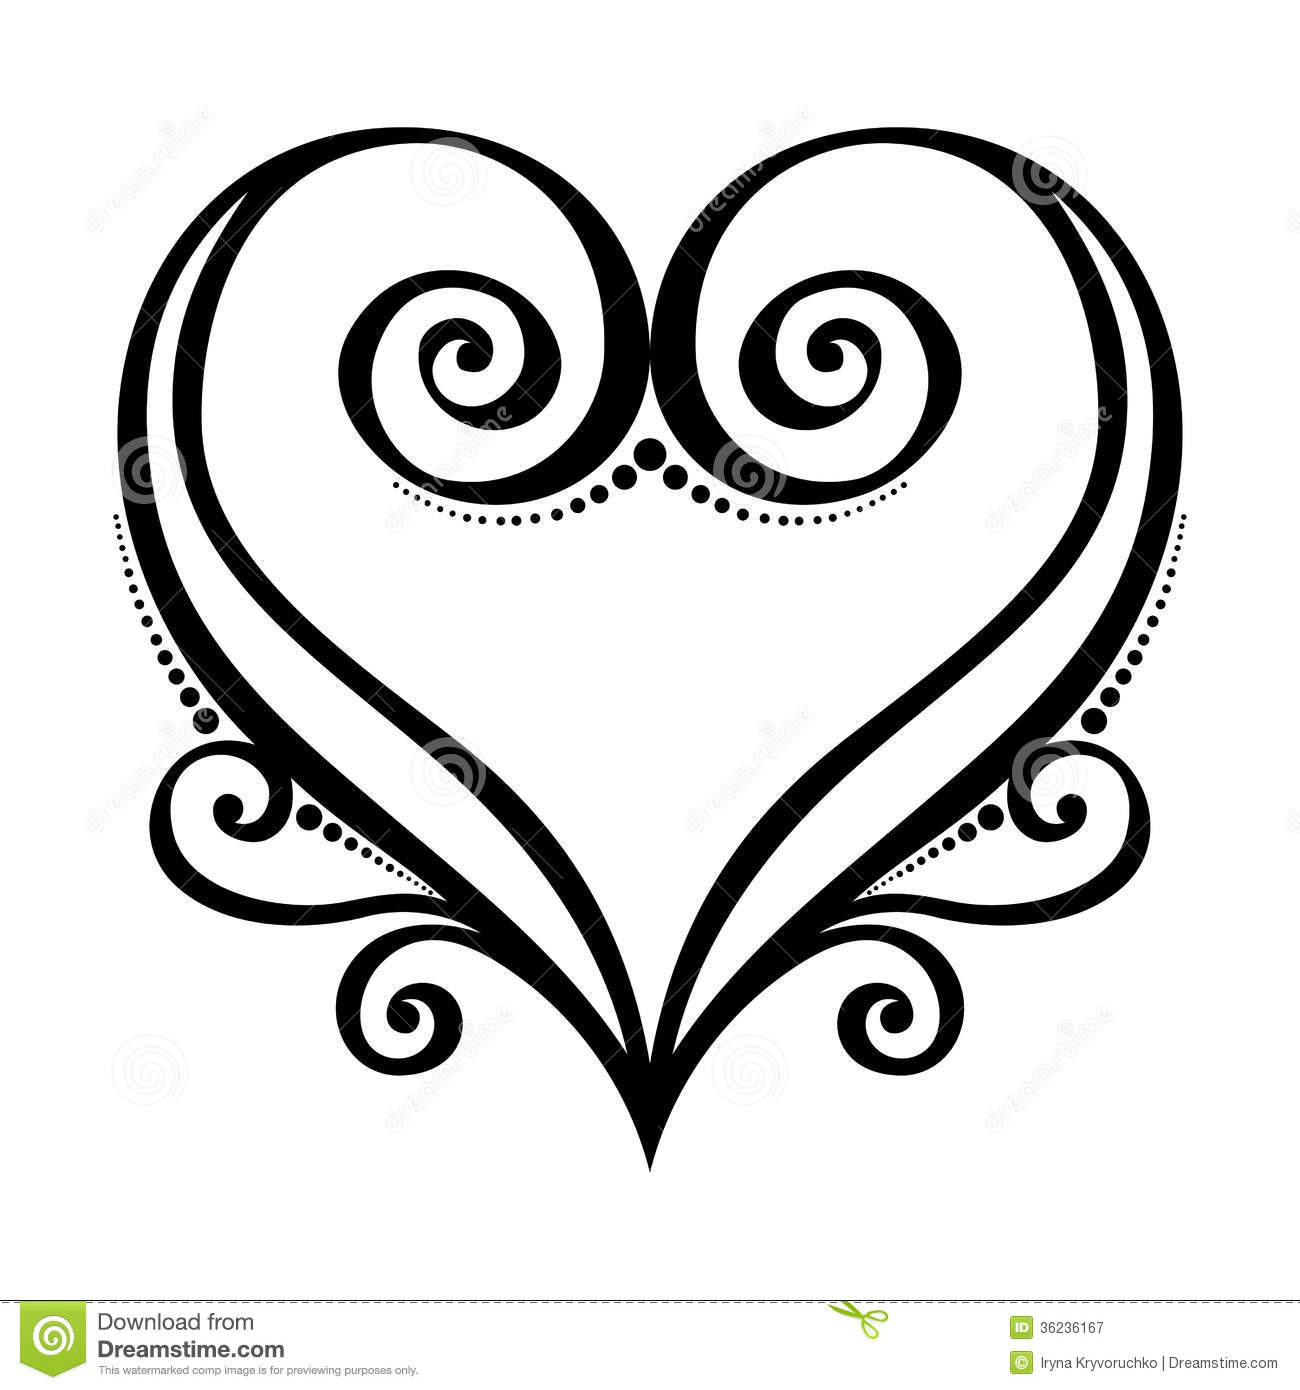 Simple Heart Line Art : Vector line art heart images black and white